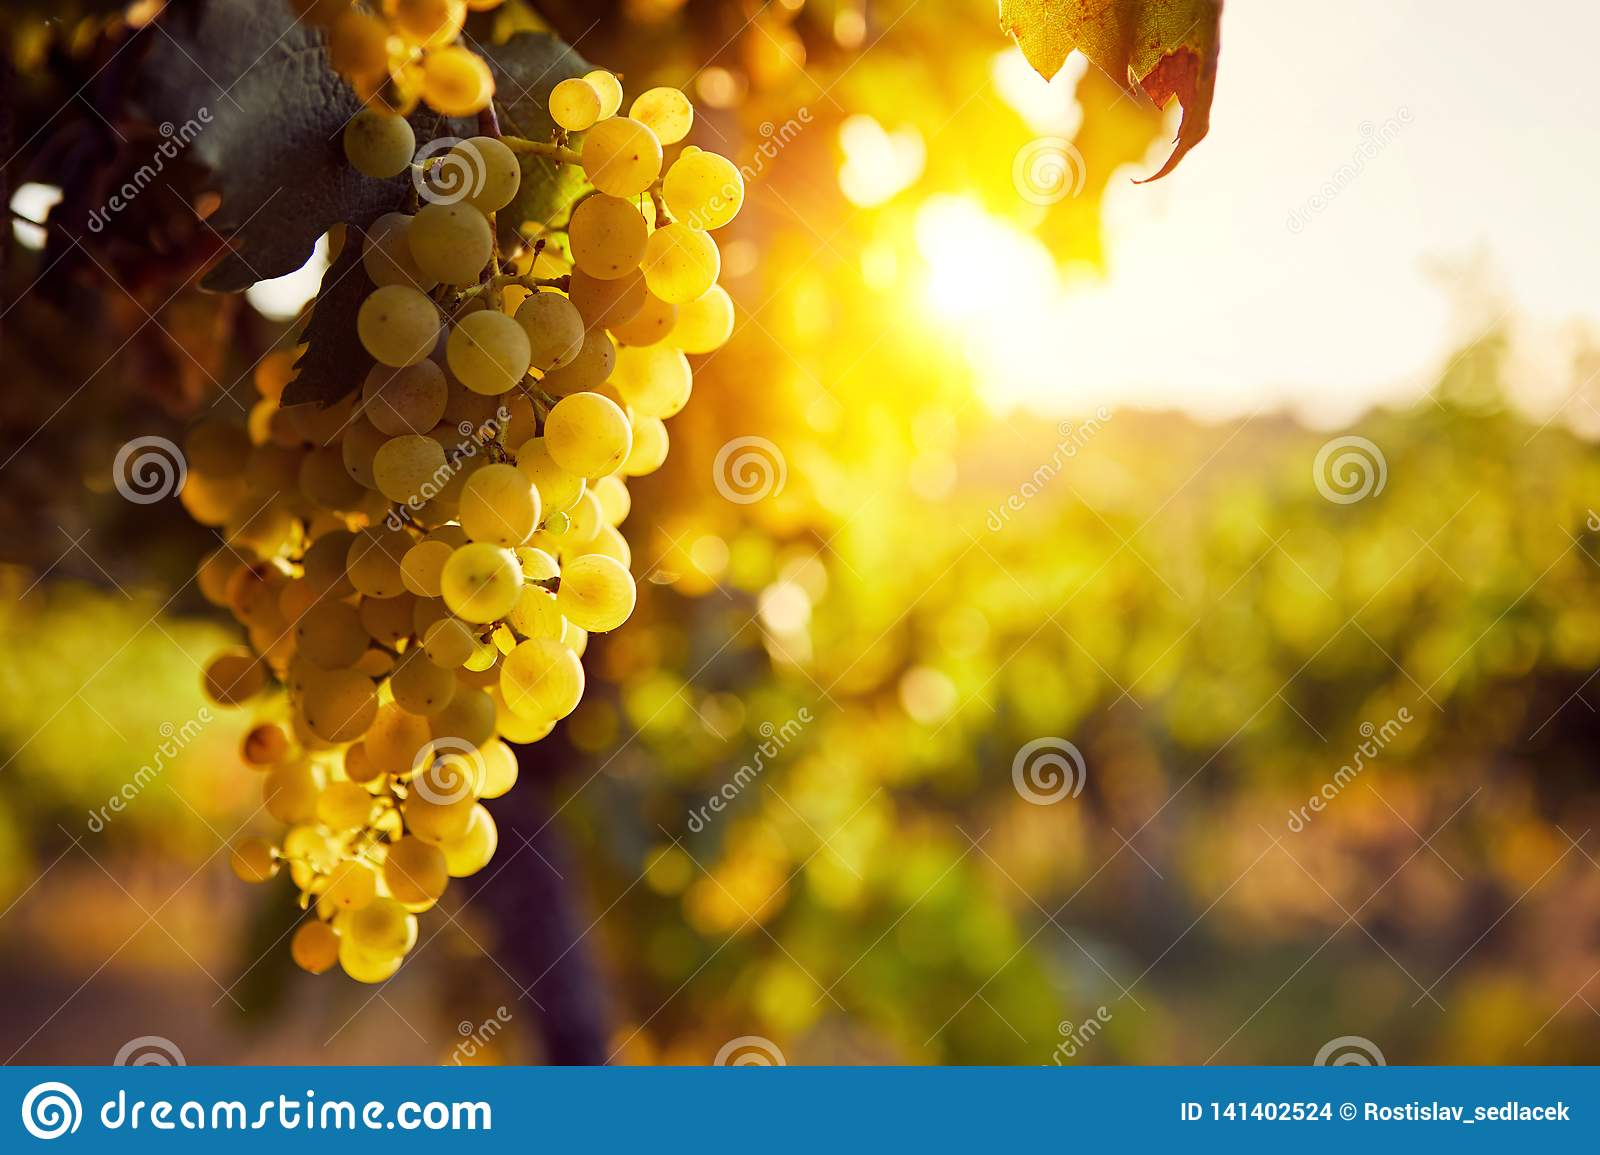 The yellow grapes on a vineyard with sunlight